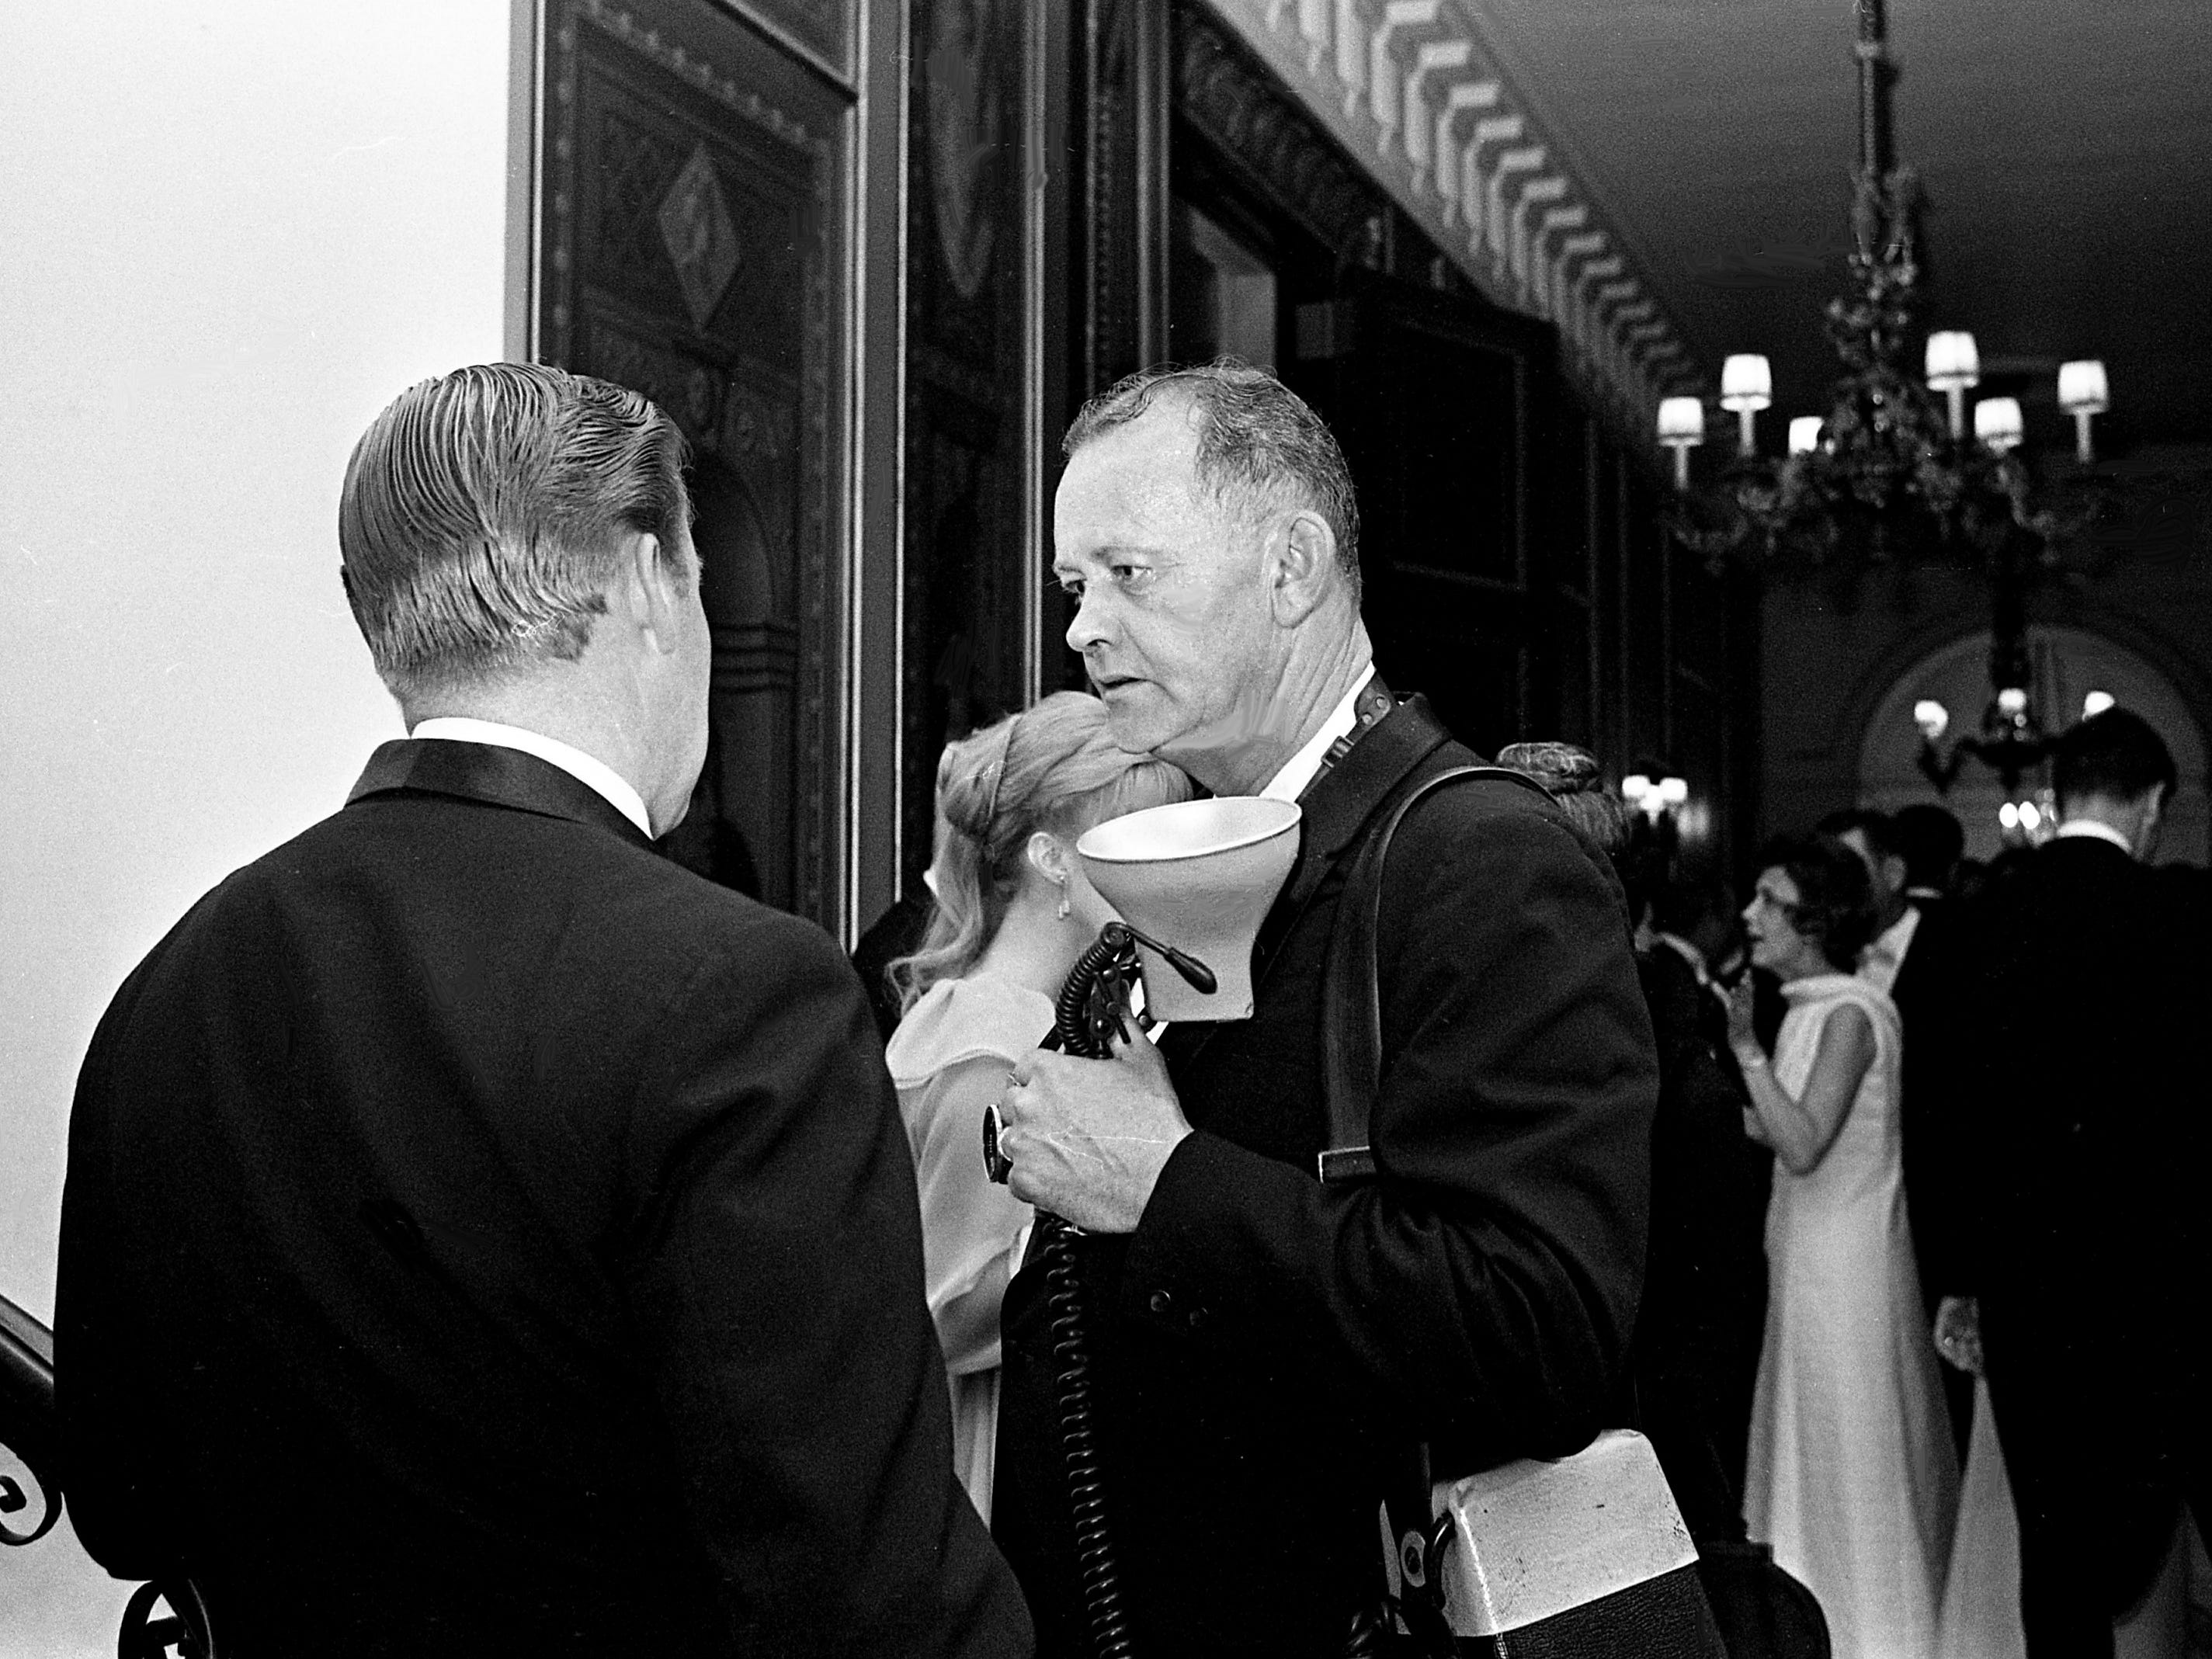 Tennessean staff photographer Bill Preston, right, talks with one of the guests during the Swan Ball on June 8, 1968. Preston was one of four photographers covering the event for the paper.